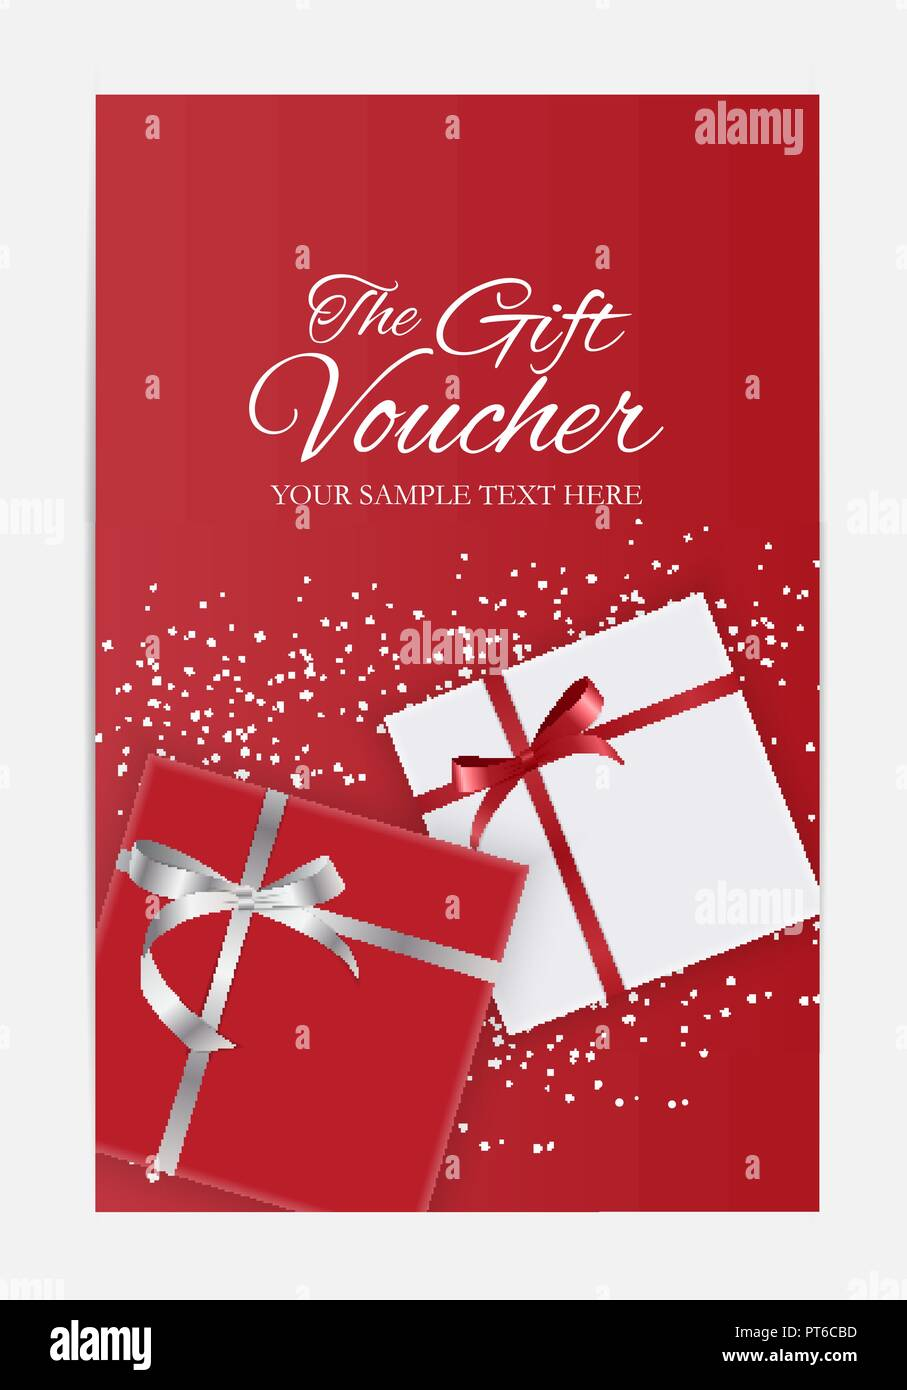 Gift Voucher Template For Your Business Vector Illustration